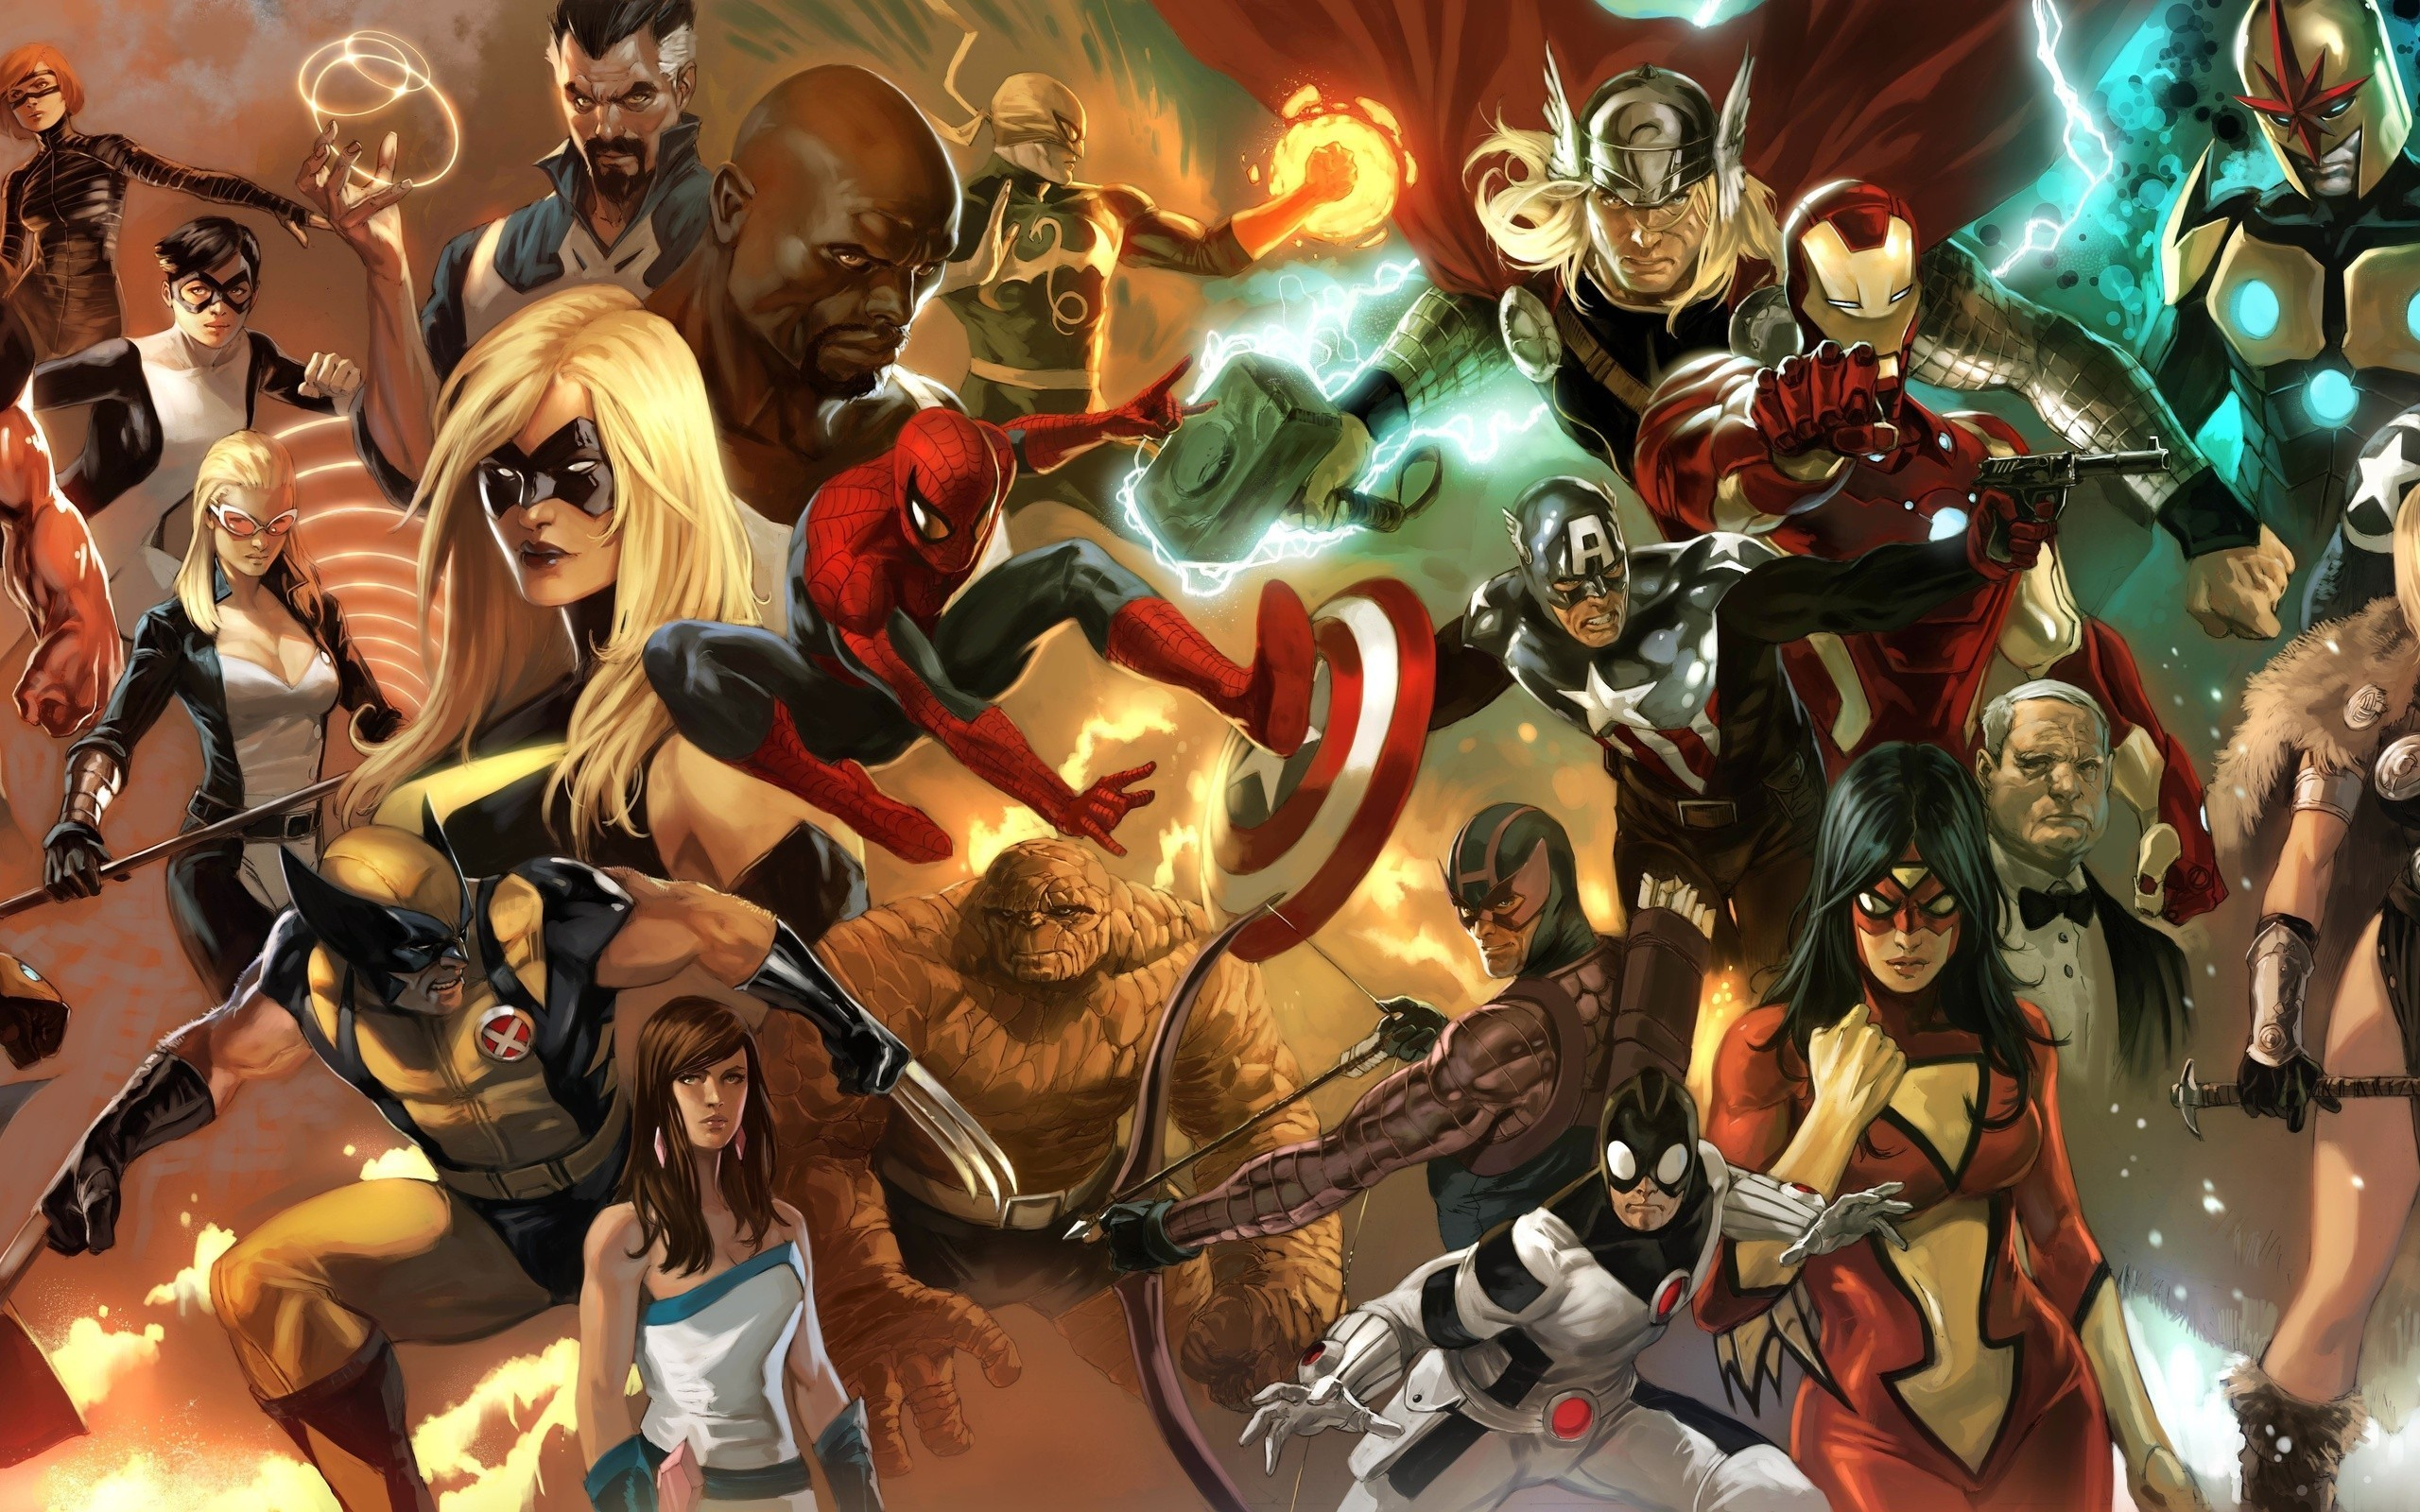 Marvel Computer Wallpapers Desktop Backgrounds 2560x1600 ID 2560x1600